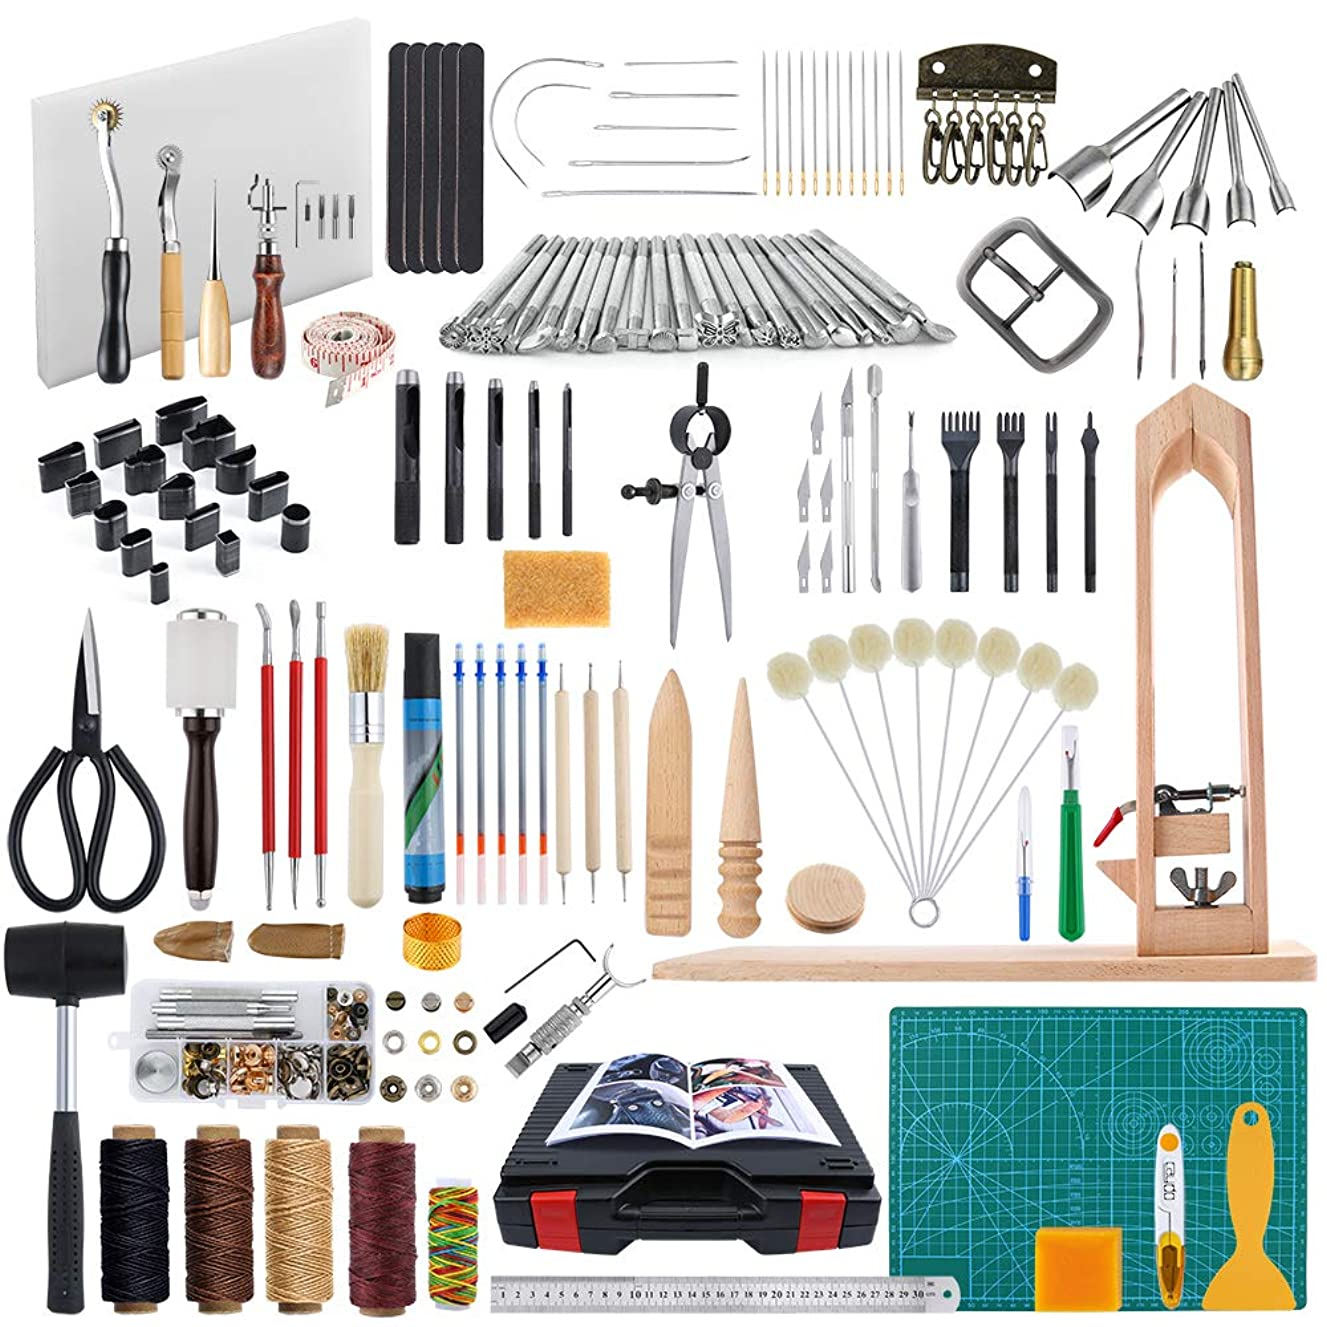 Caydo 202 Pieces Leather Sewing Tools Kit with an Instructions, Leather DIY Hand Stitching Tools with Sewing Pony, Prong Punch, Hole Hollow Punch, Matting Cut for?Leather Craft Projects